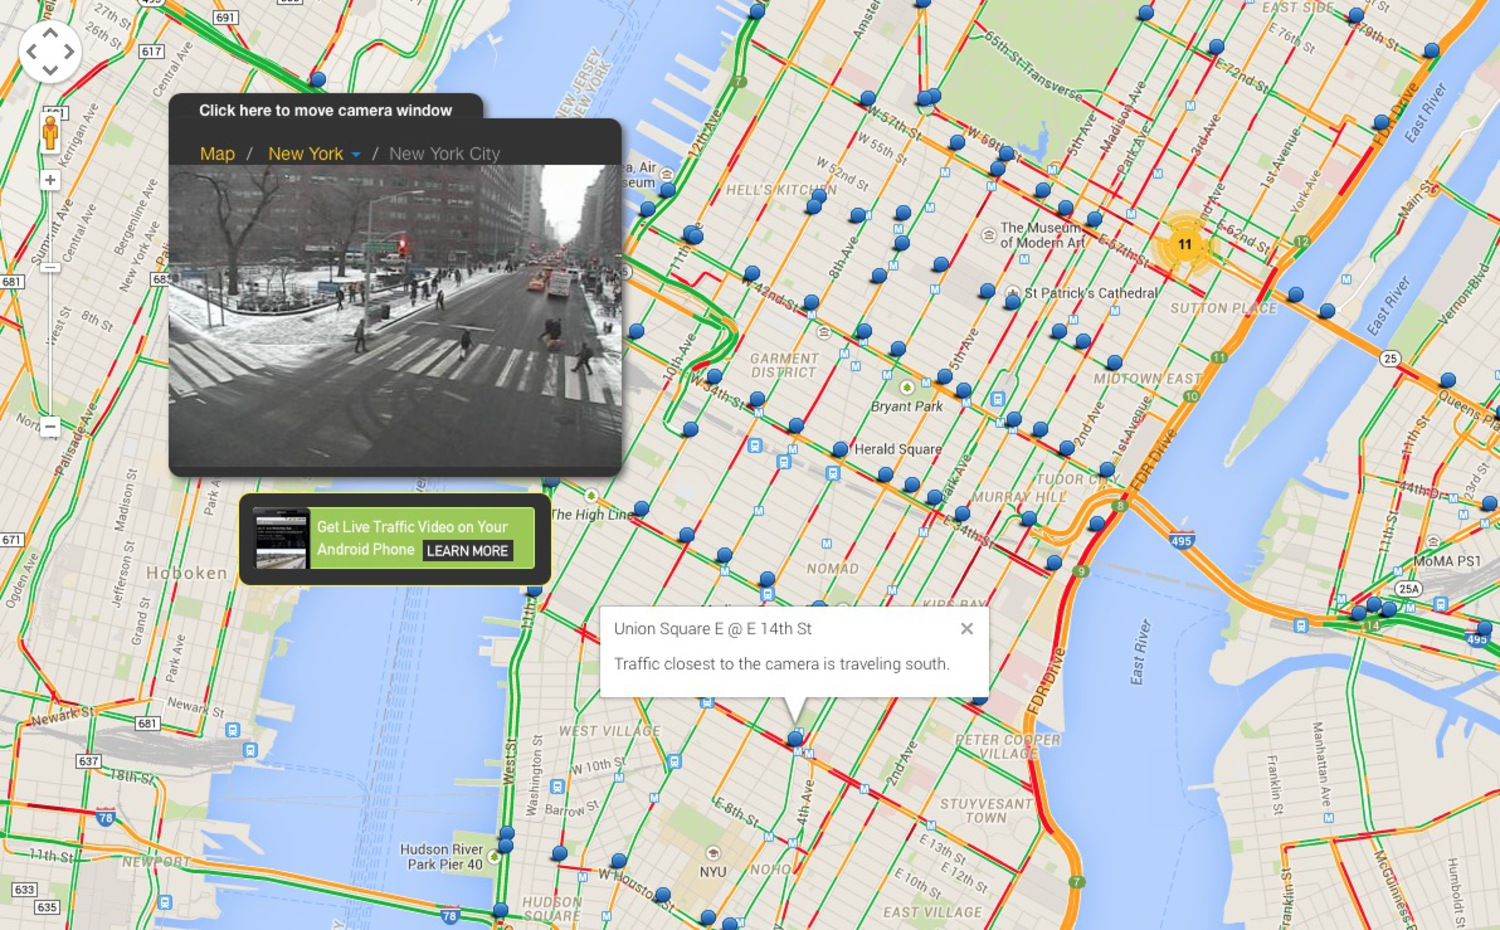 Website Provides Hundreds Of Live Traffic Cam Feeds Of New York City